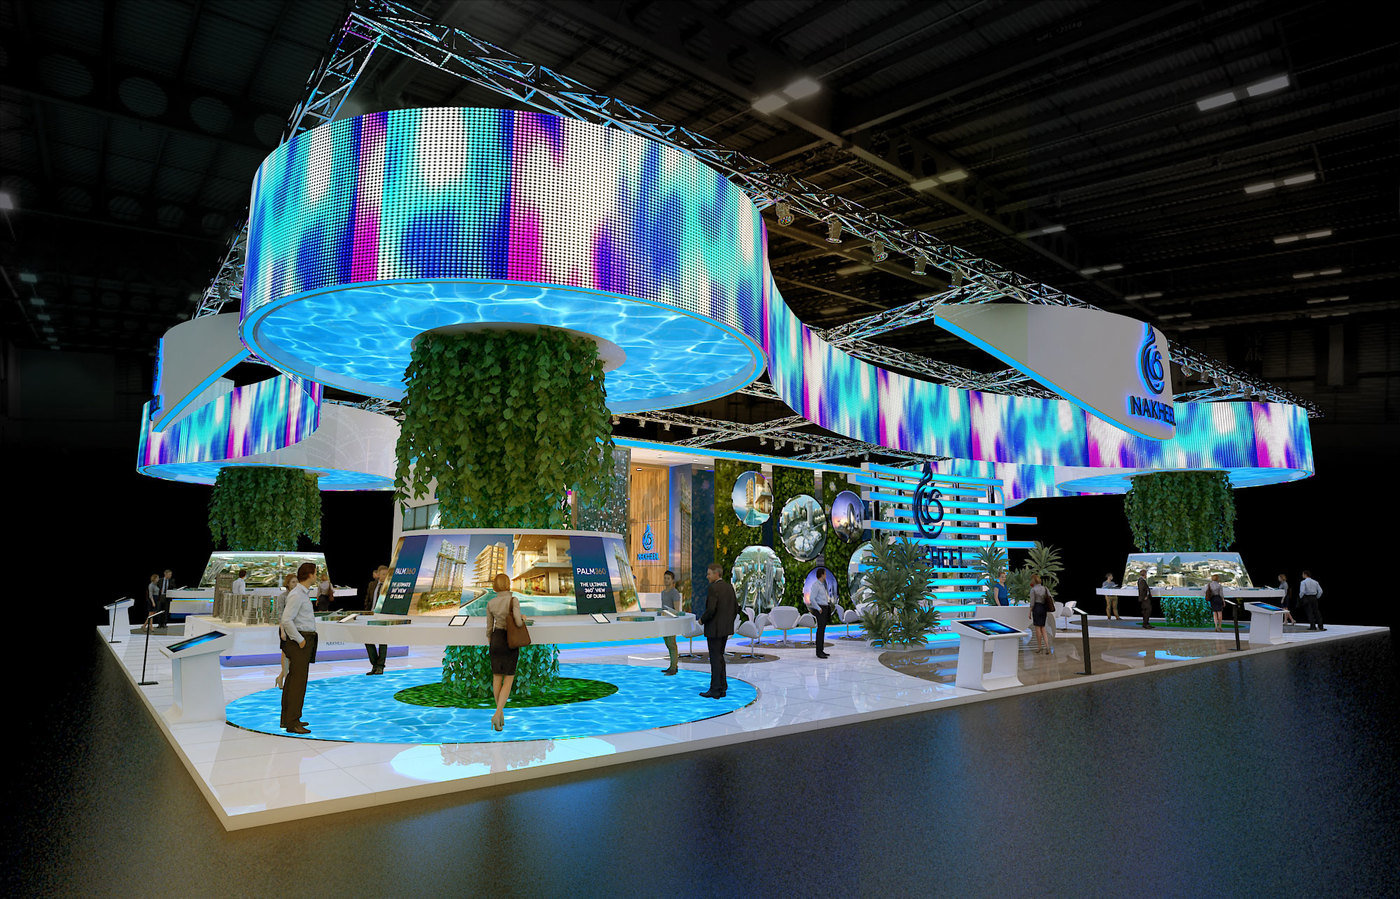 Exhibition Booth Decoration : Nakheel exhibition booth by rohtash jangra at coroflot